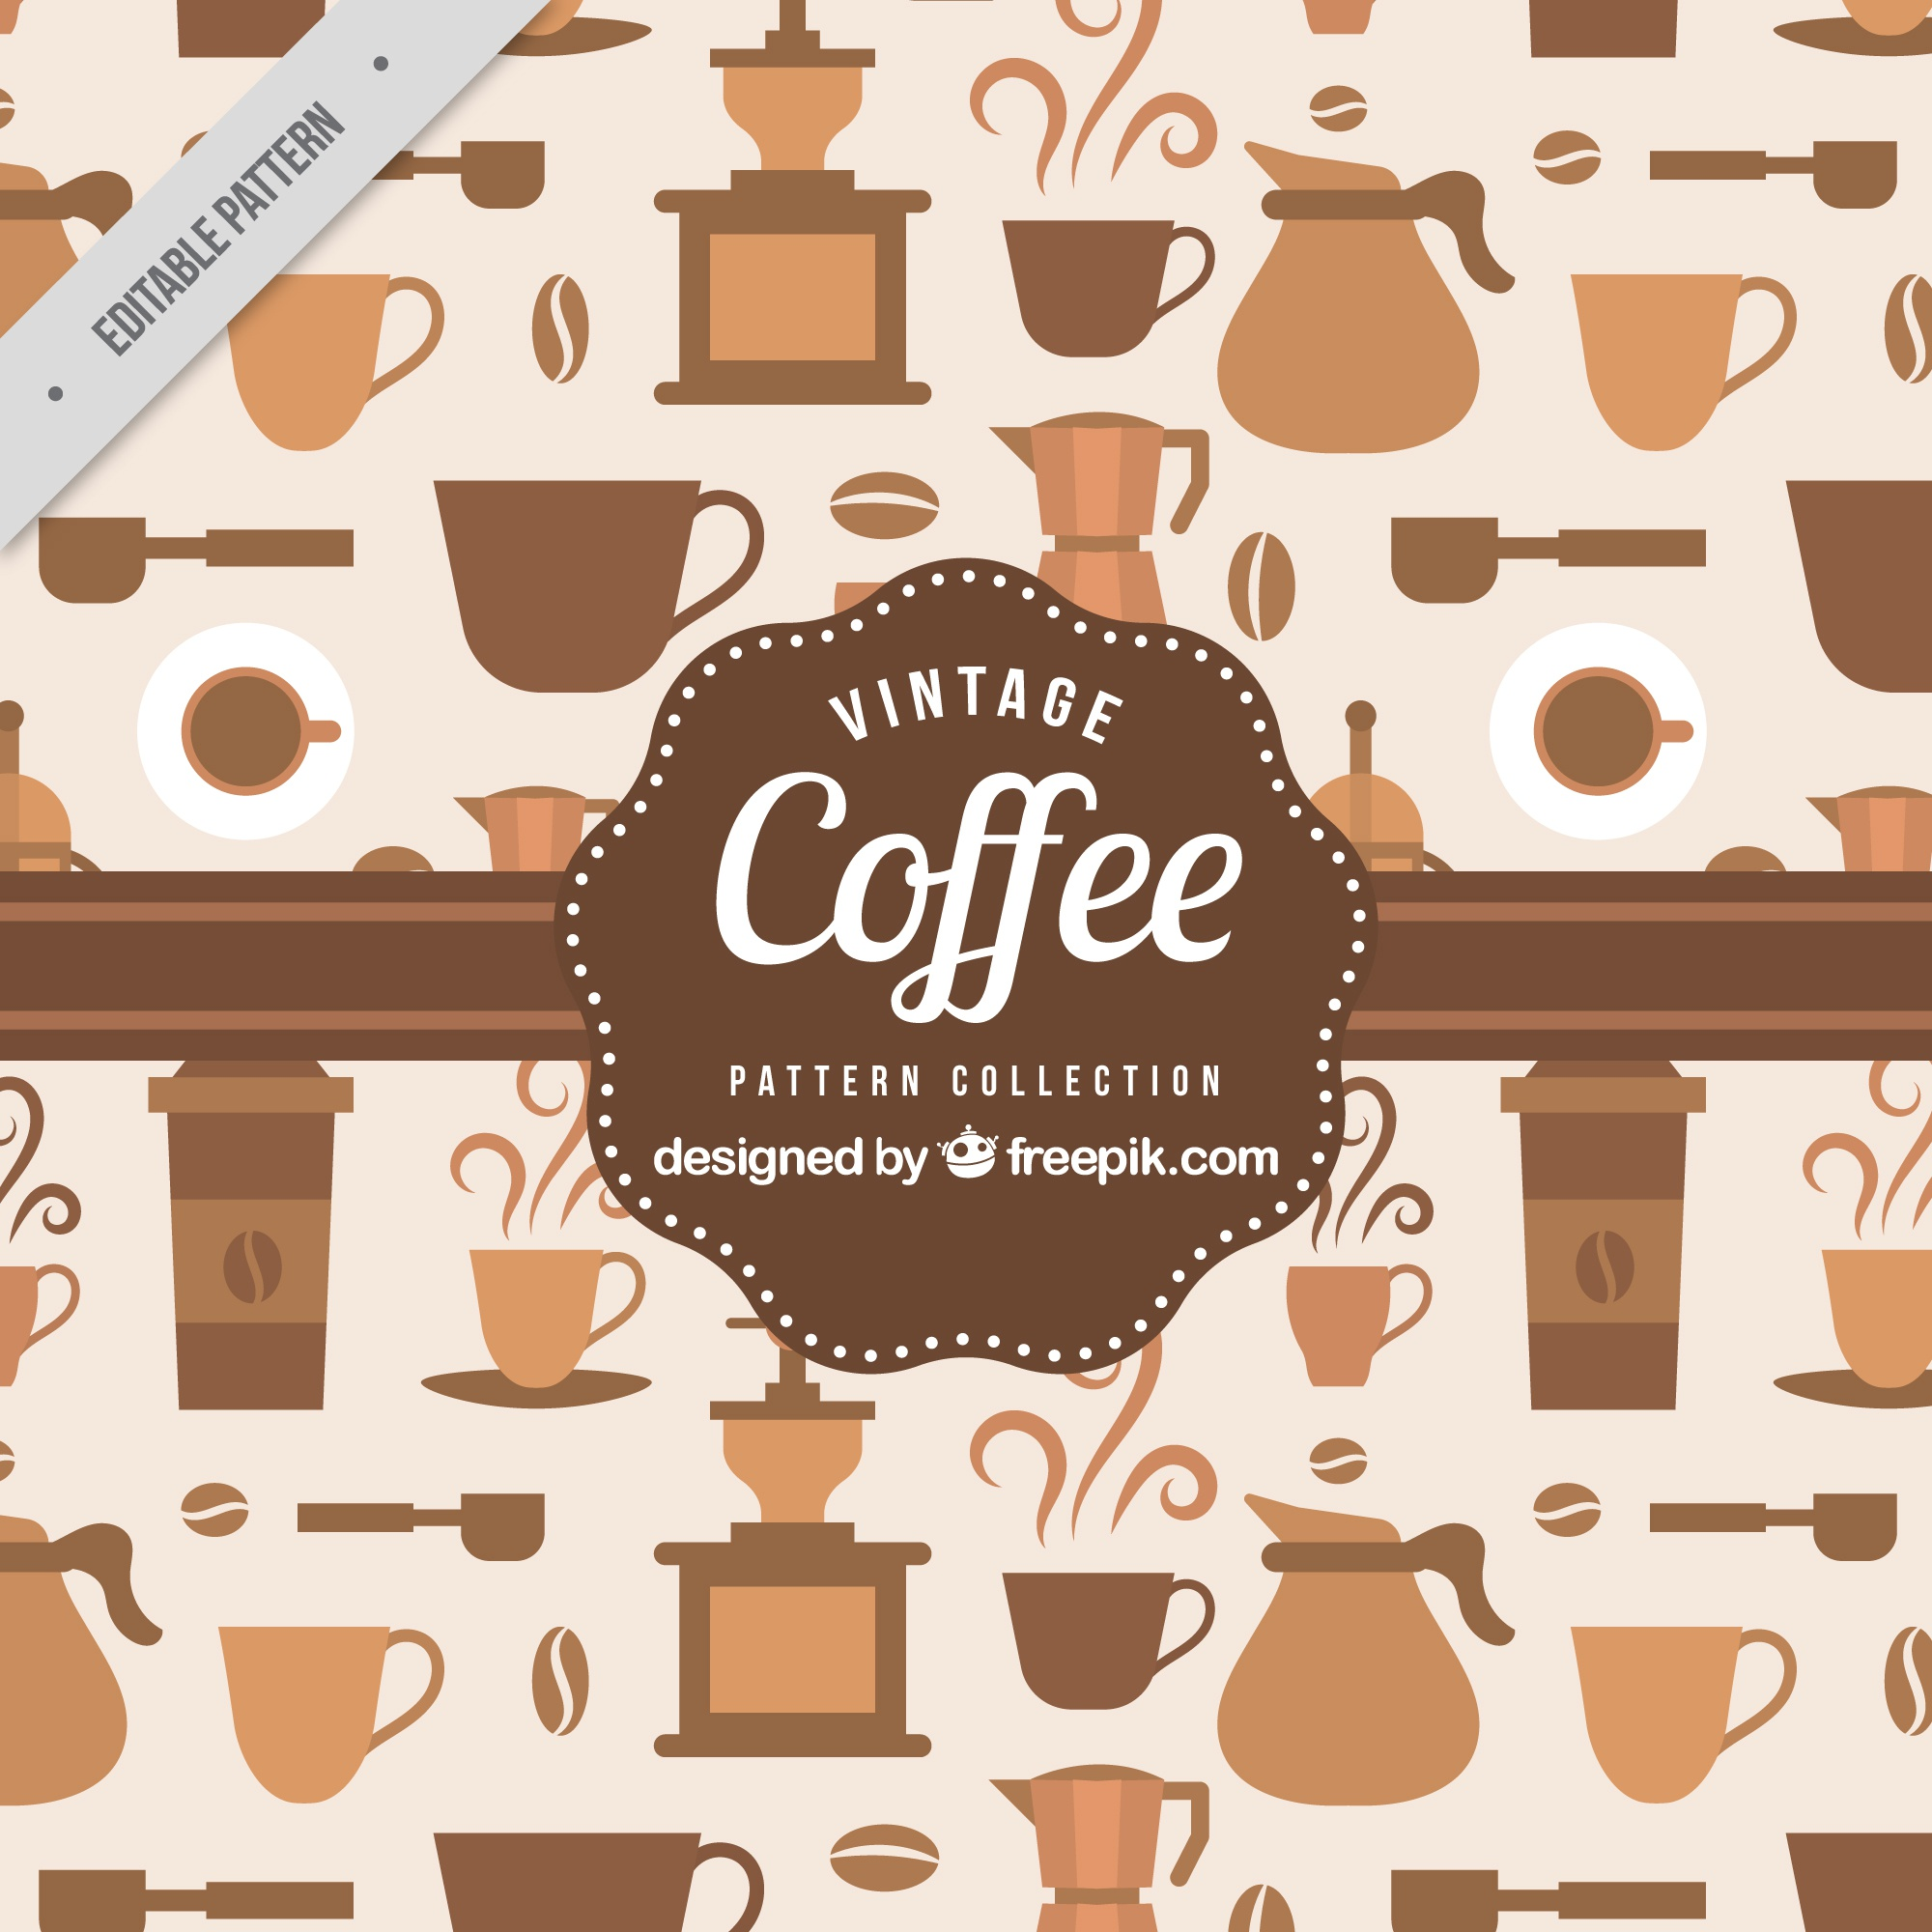 Pattern of coffee elements in vintage style